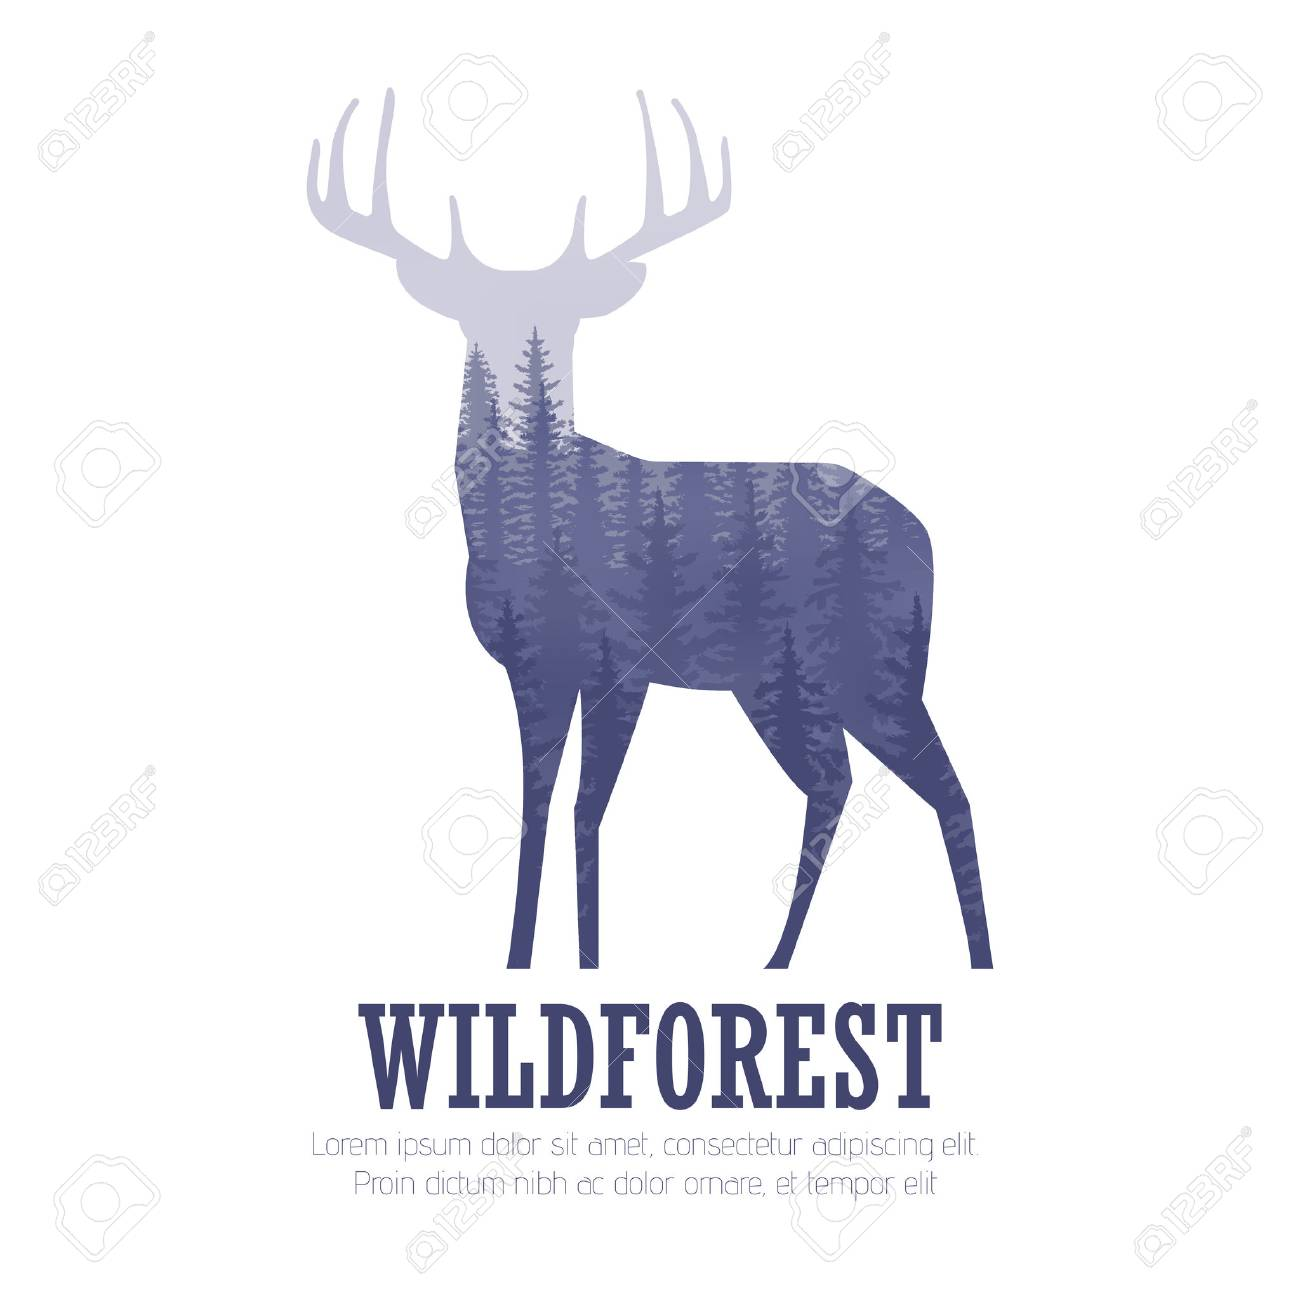 Silhouette of a deer with pine forest, blue and white colors background - 57405884